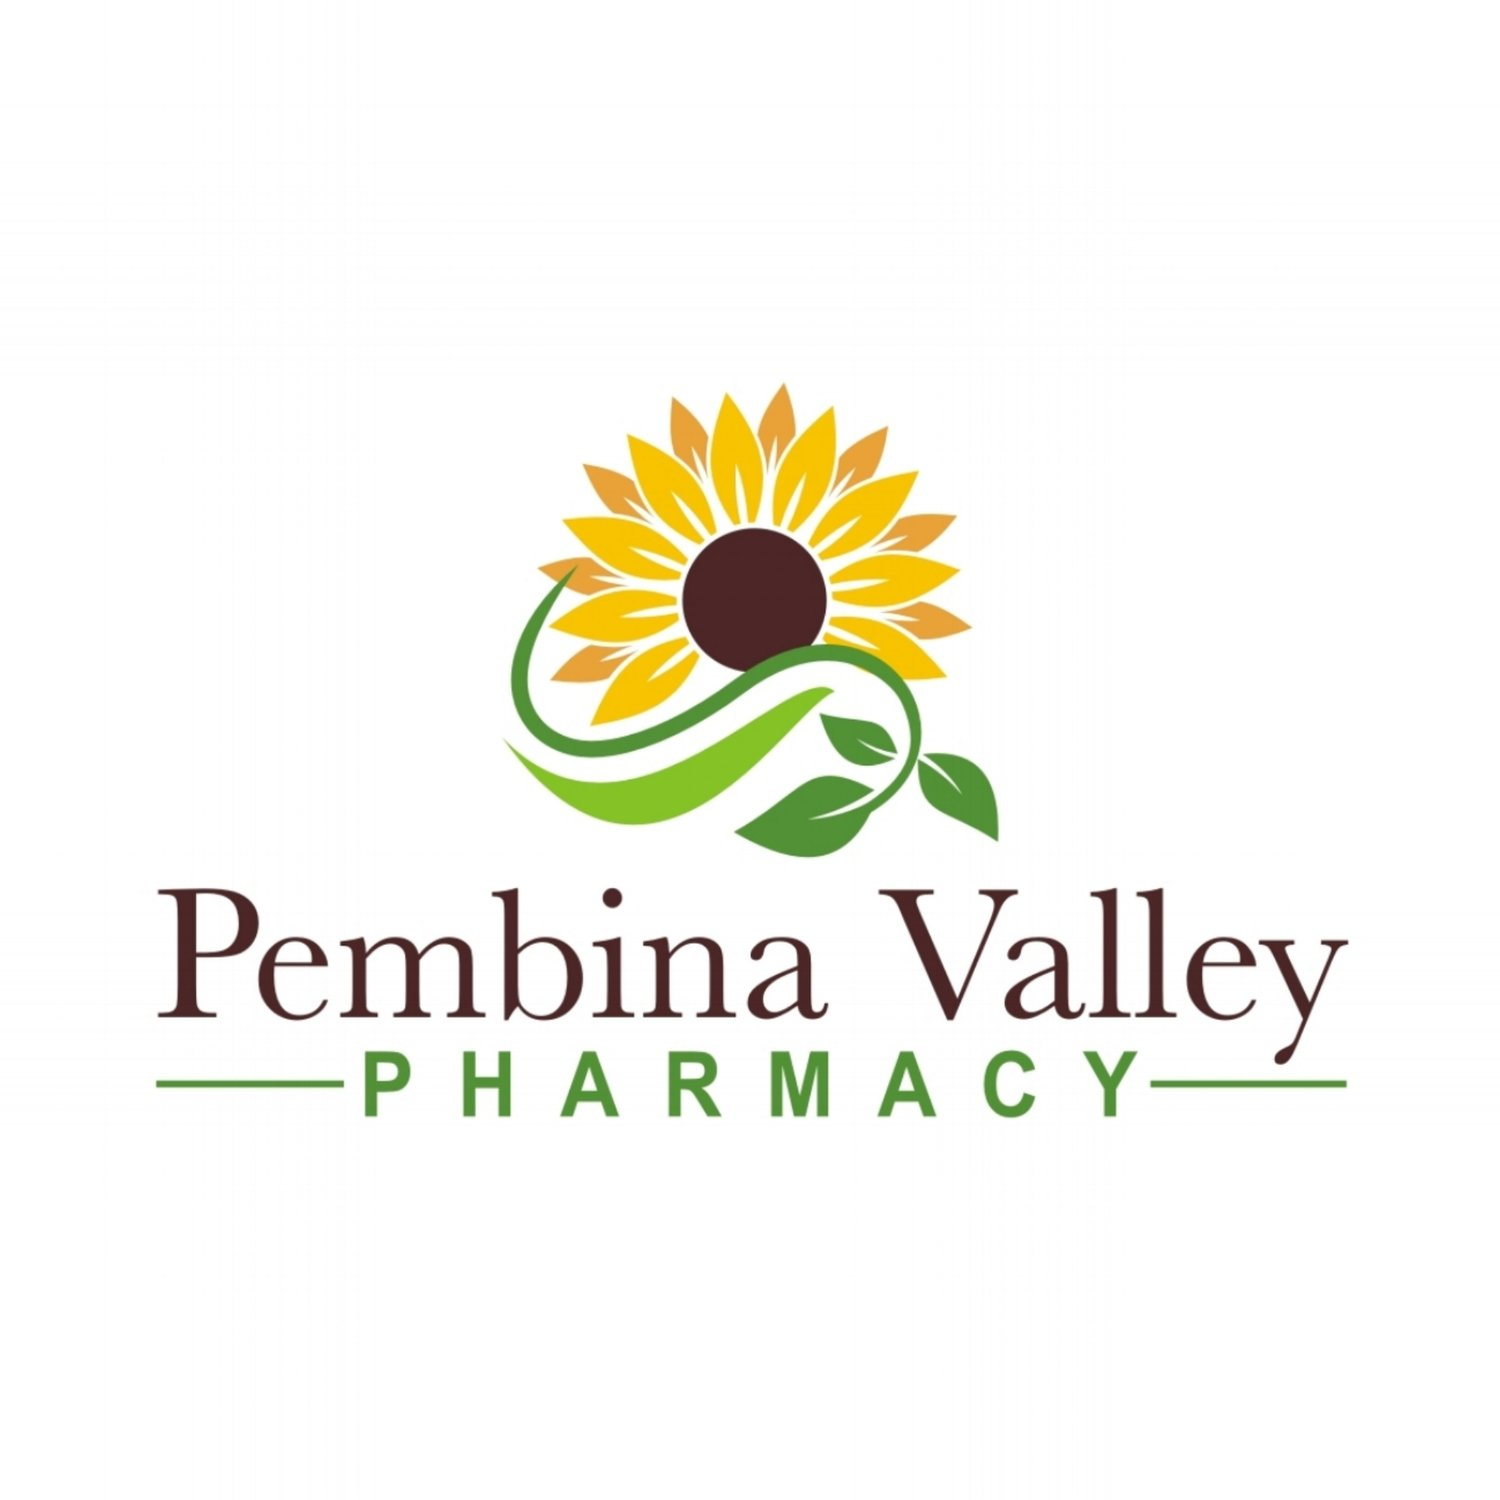 Pembina Valley Pharmacy